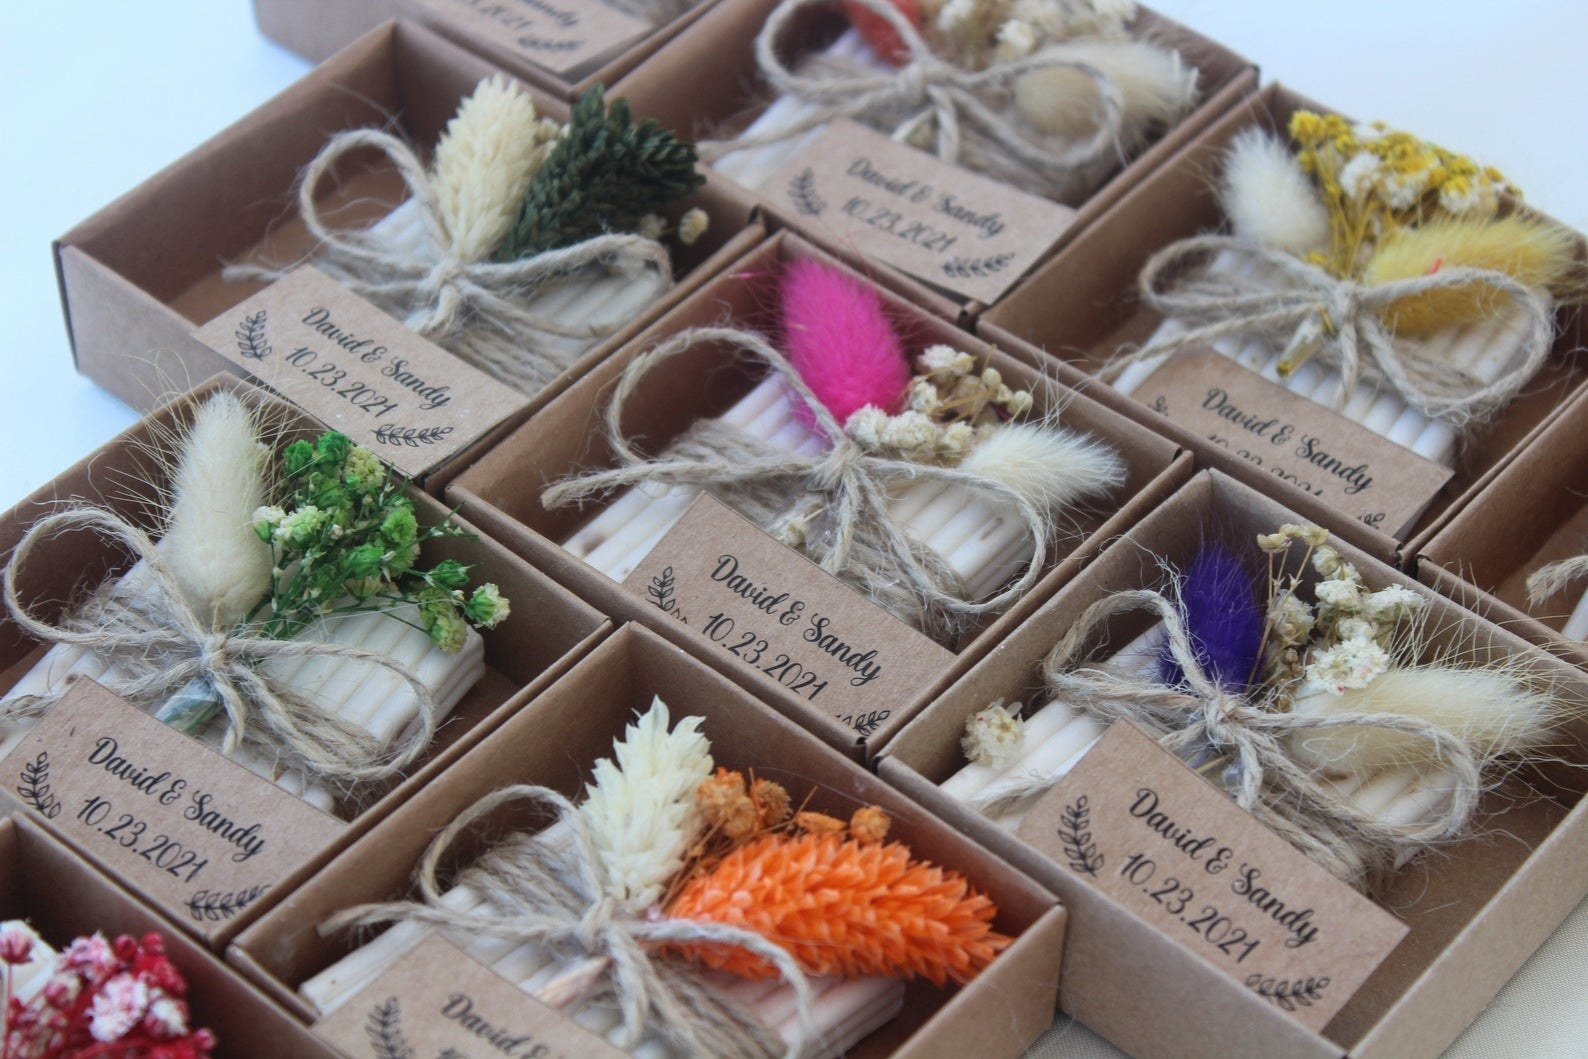 """Eight bars of soaps wrapped with twine, flowers, and a personalized tag that says """"David and Sandy"""" with a date"""